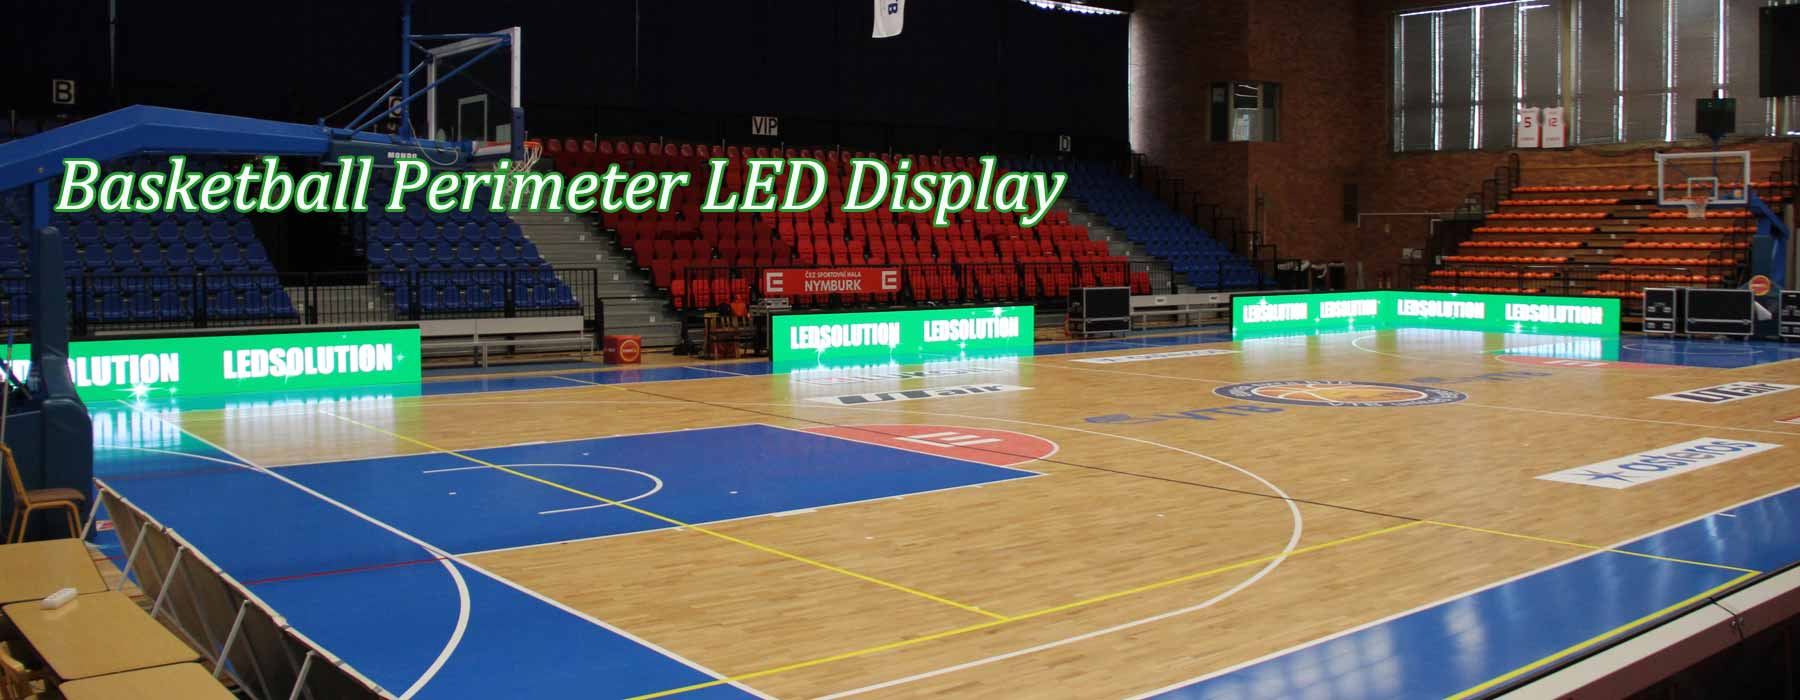 Indoor-P10-Perimeter-LED-Display1